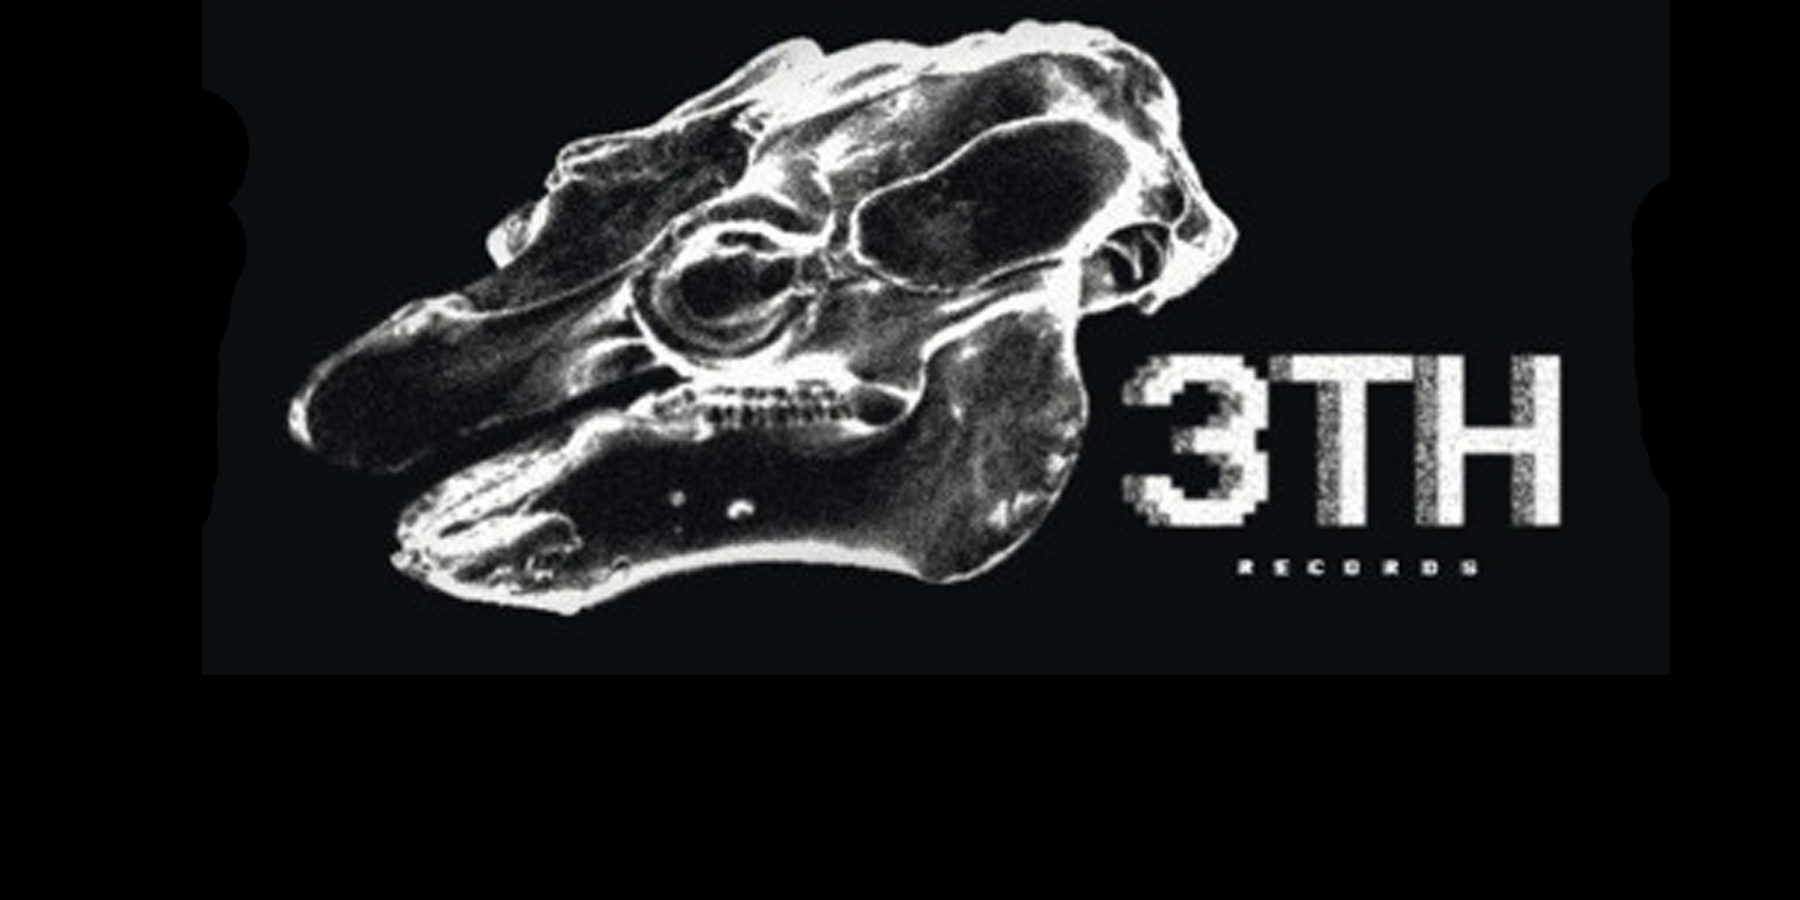 3th-records-logo